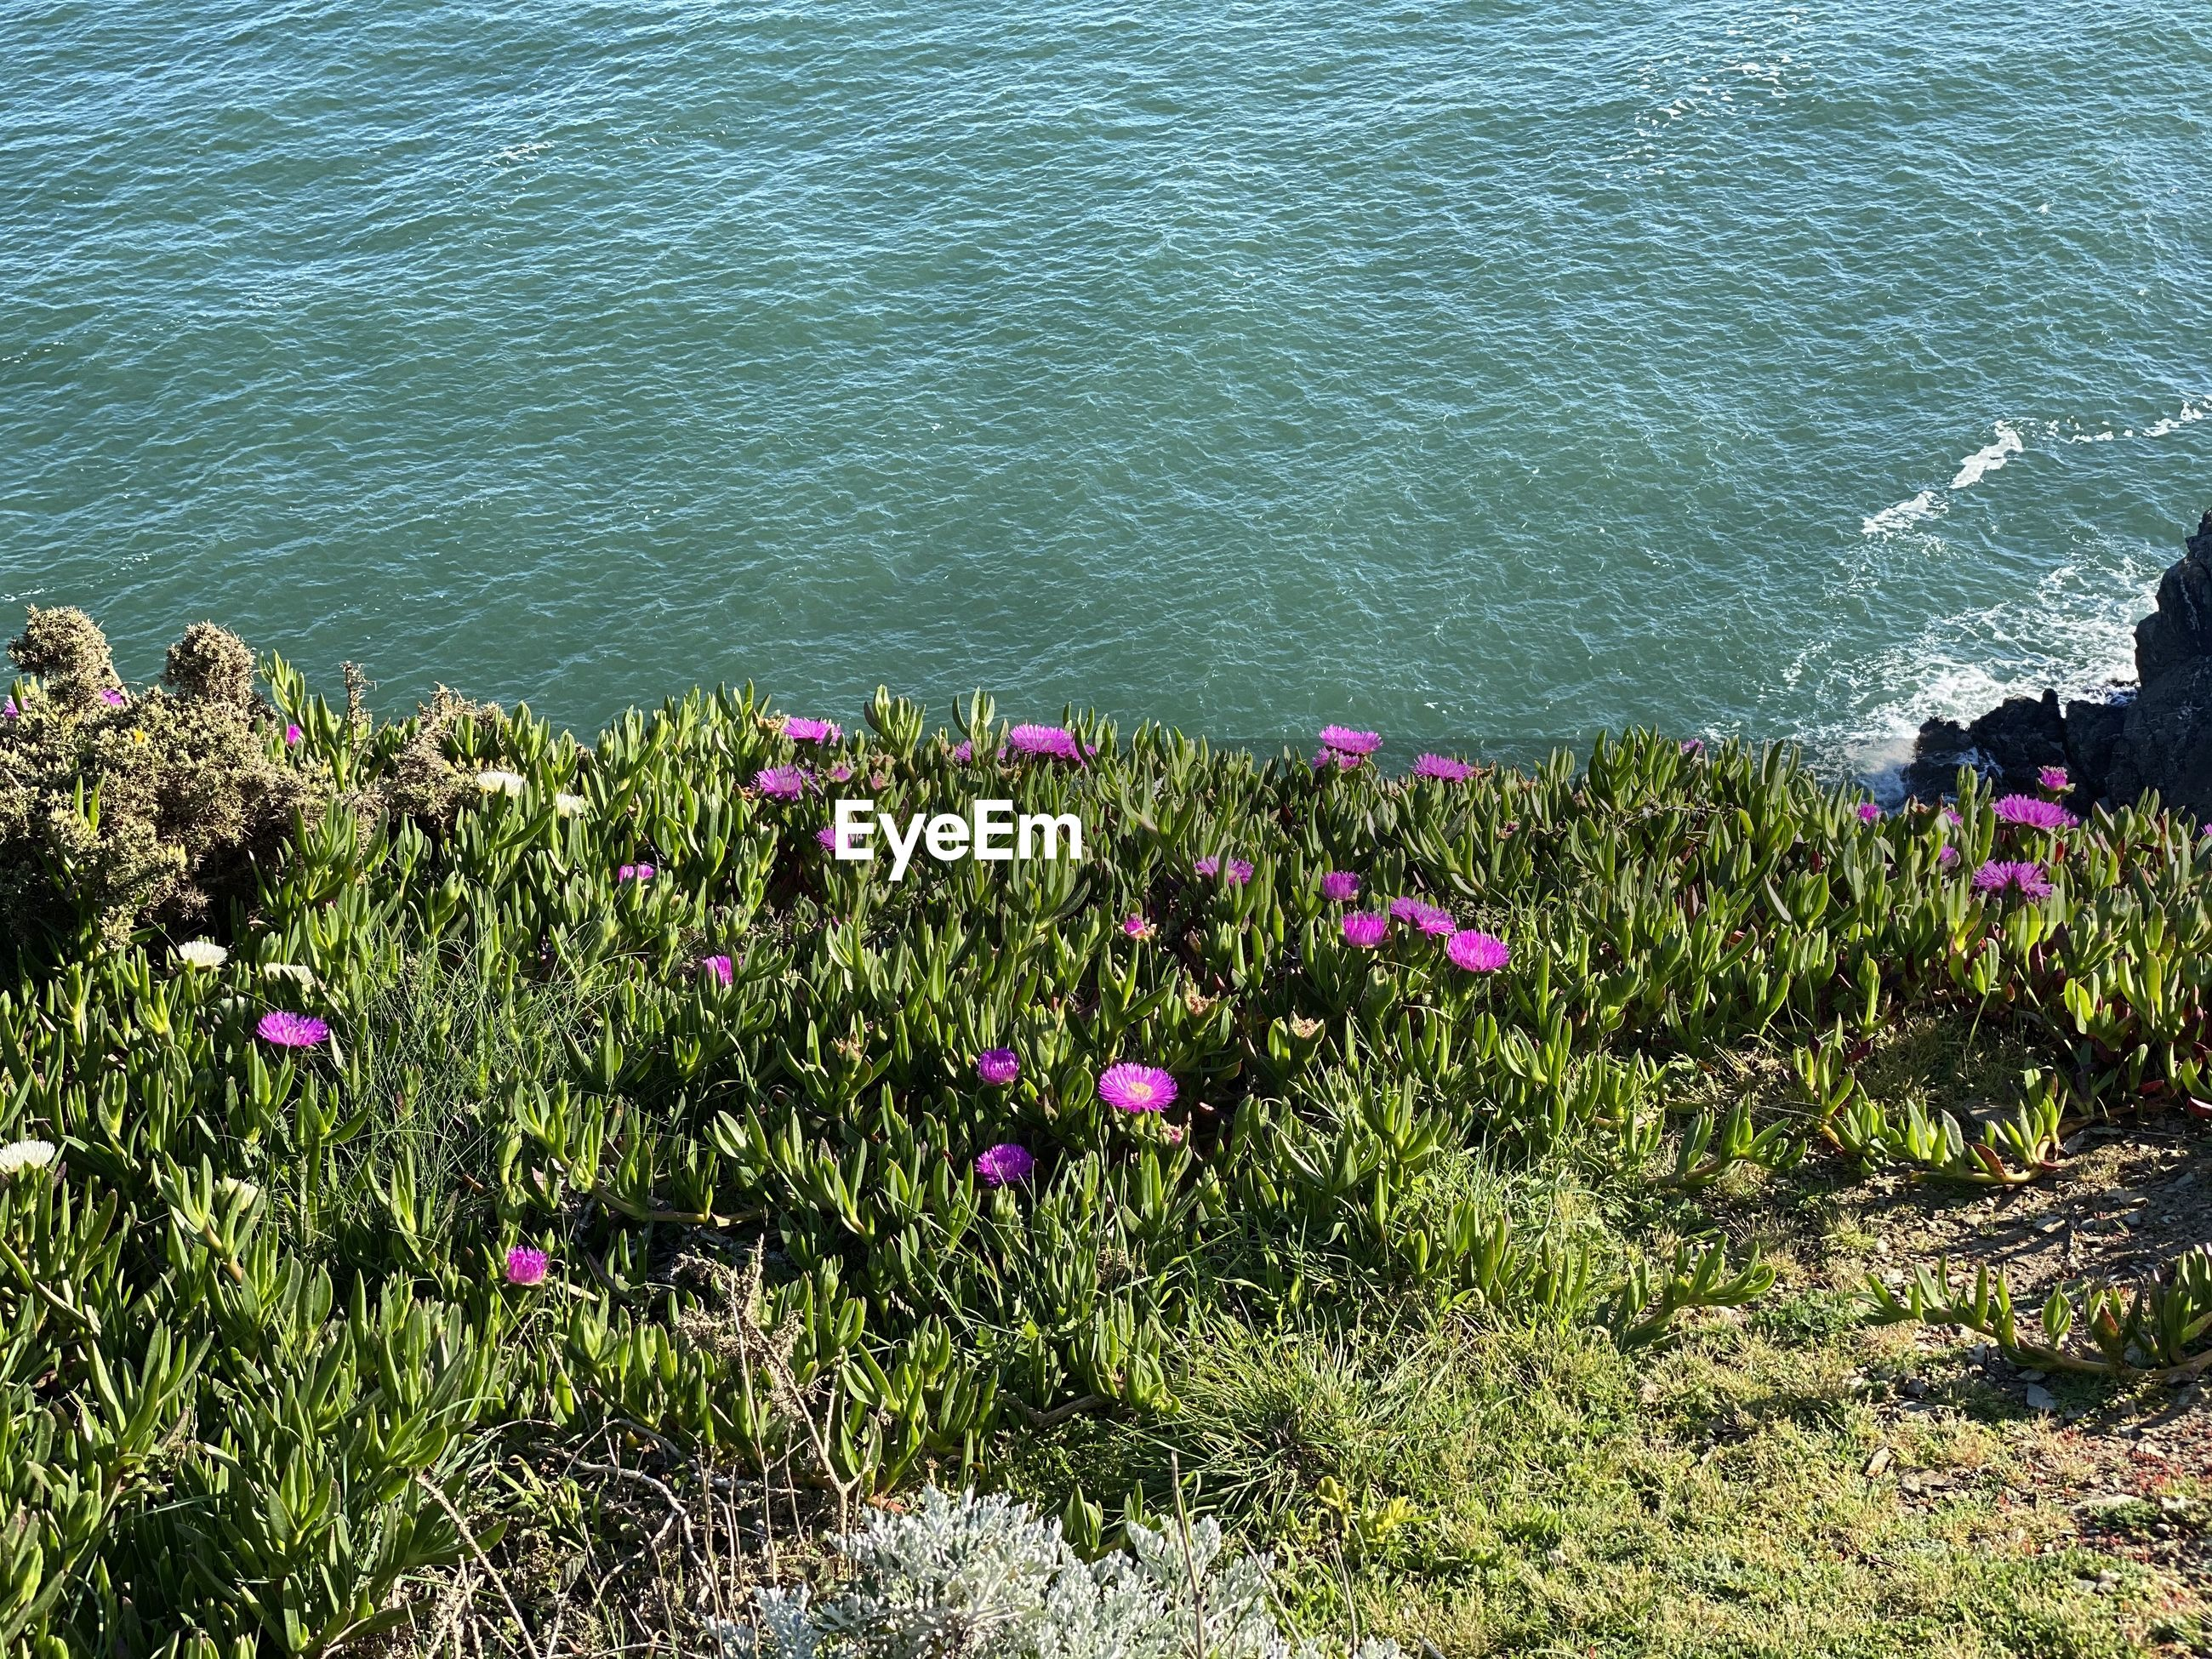 HIGH ANGLE VIEW OF PINK FLOWERING PLANTS IN SEA